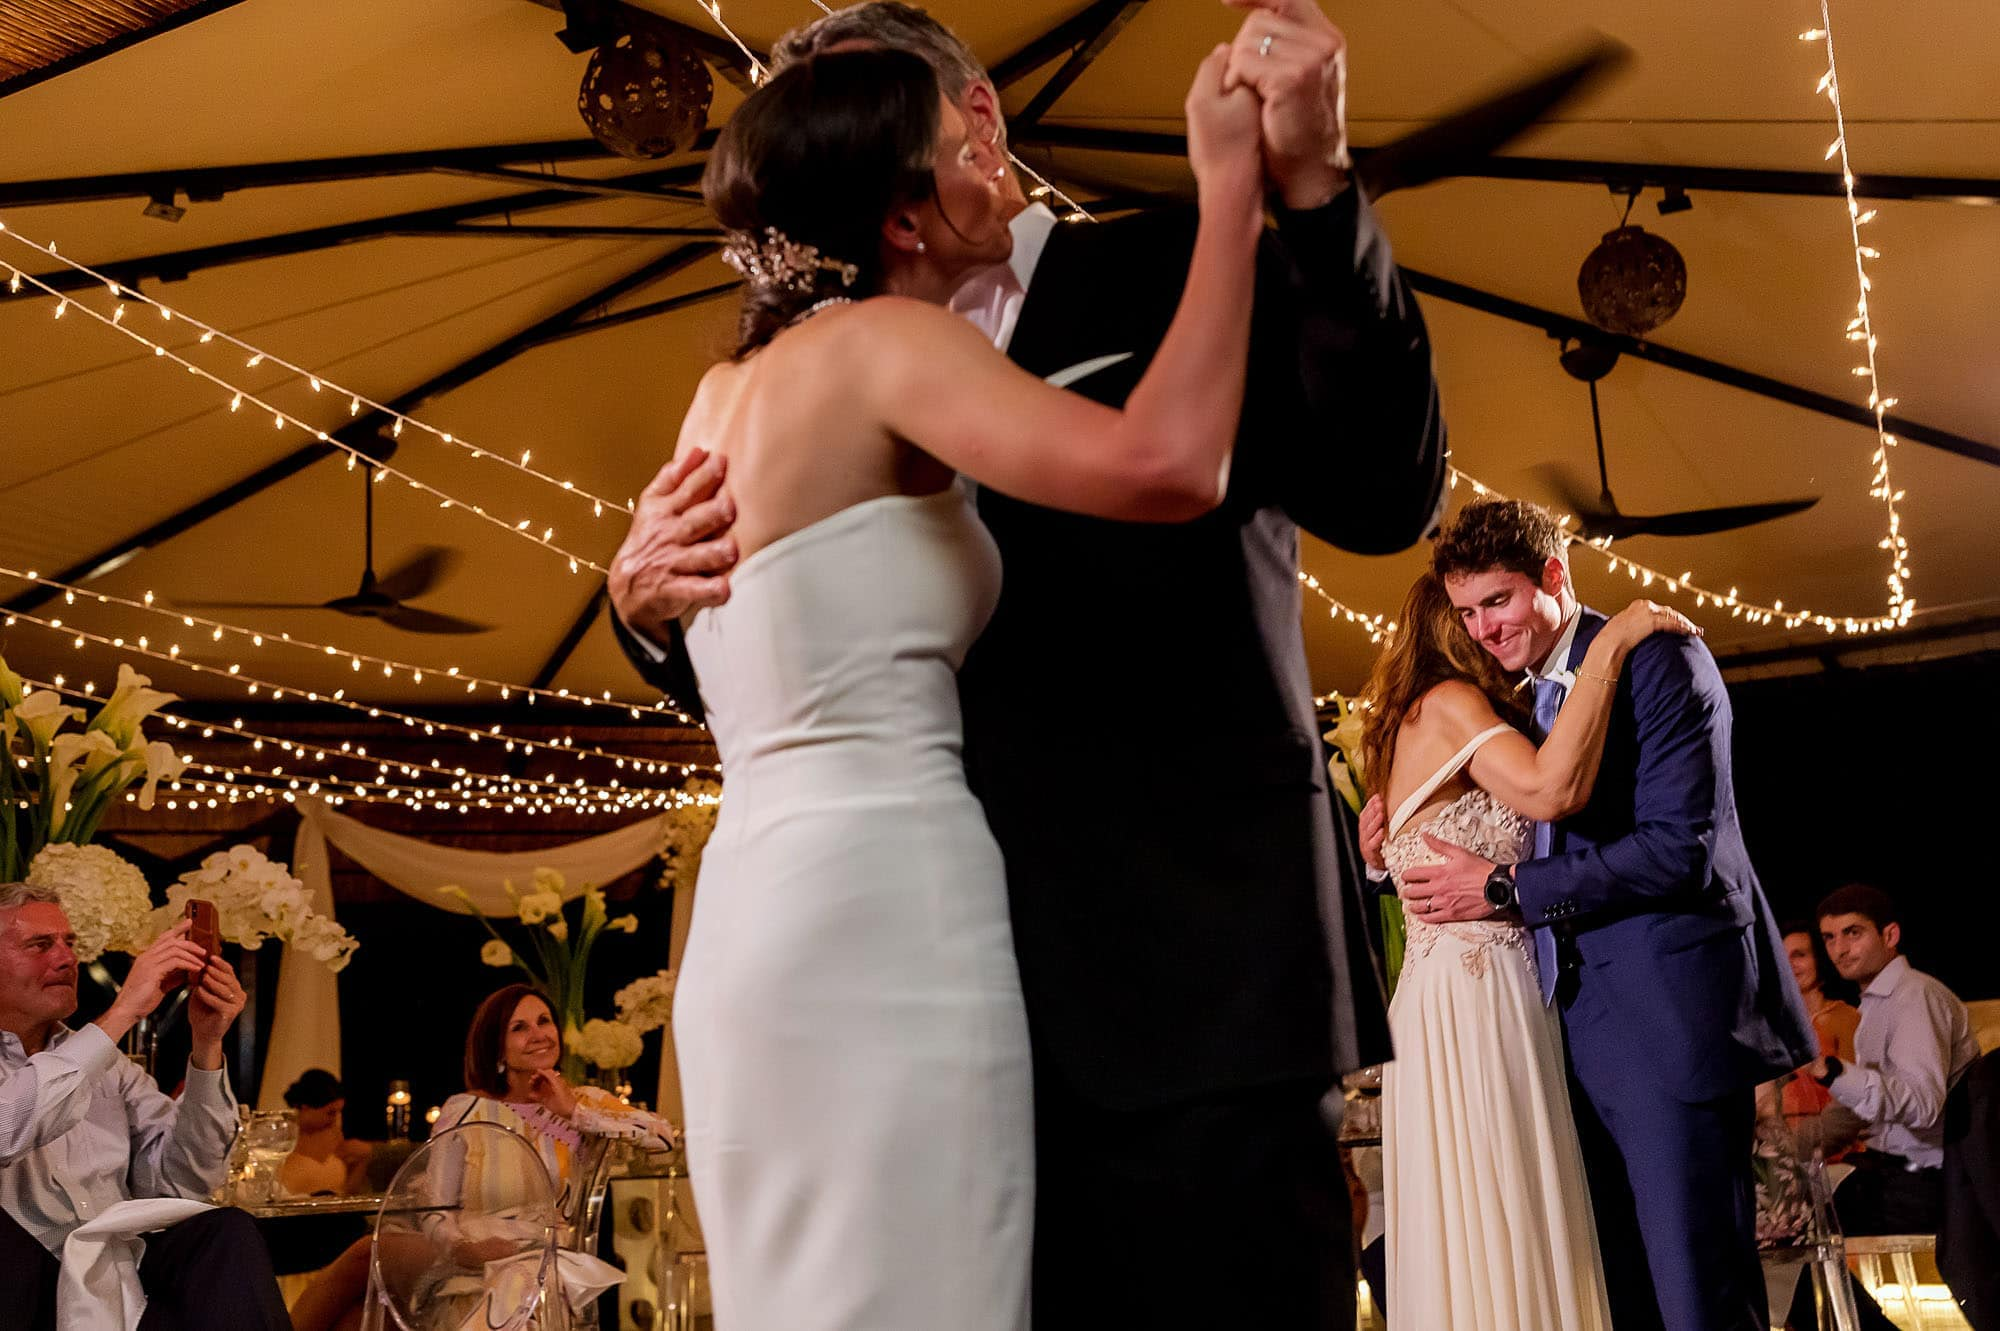 Dancing with dad and mom